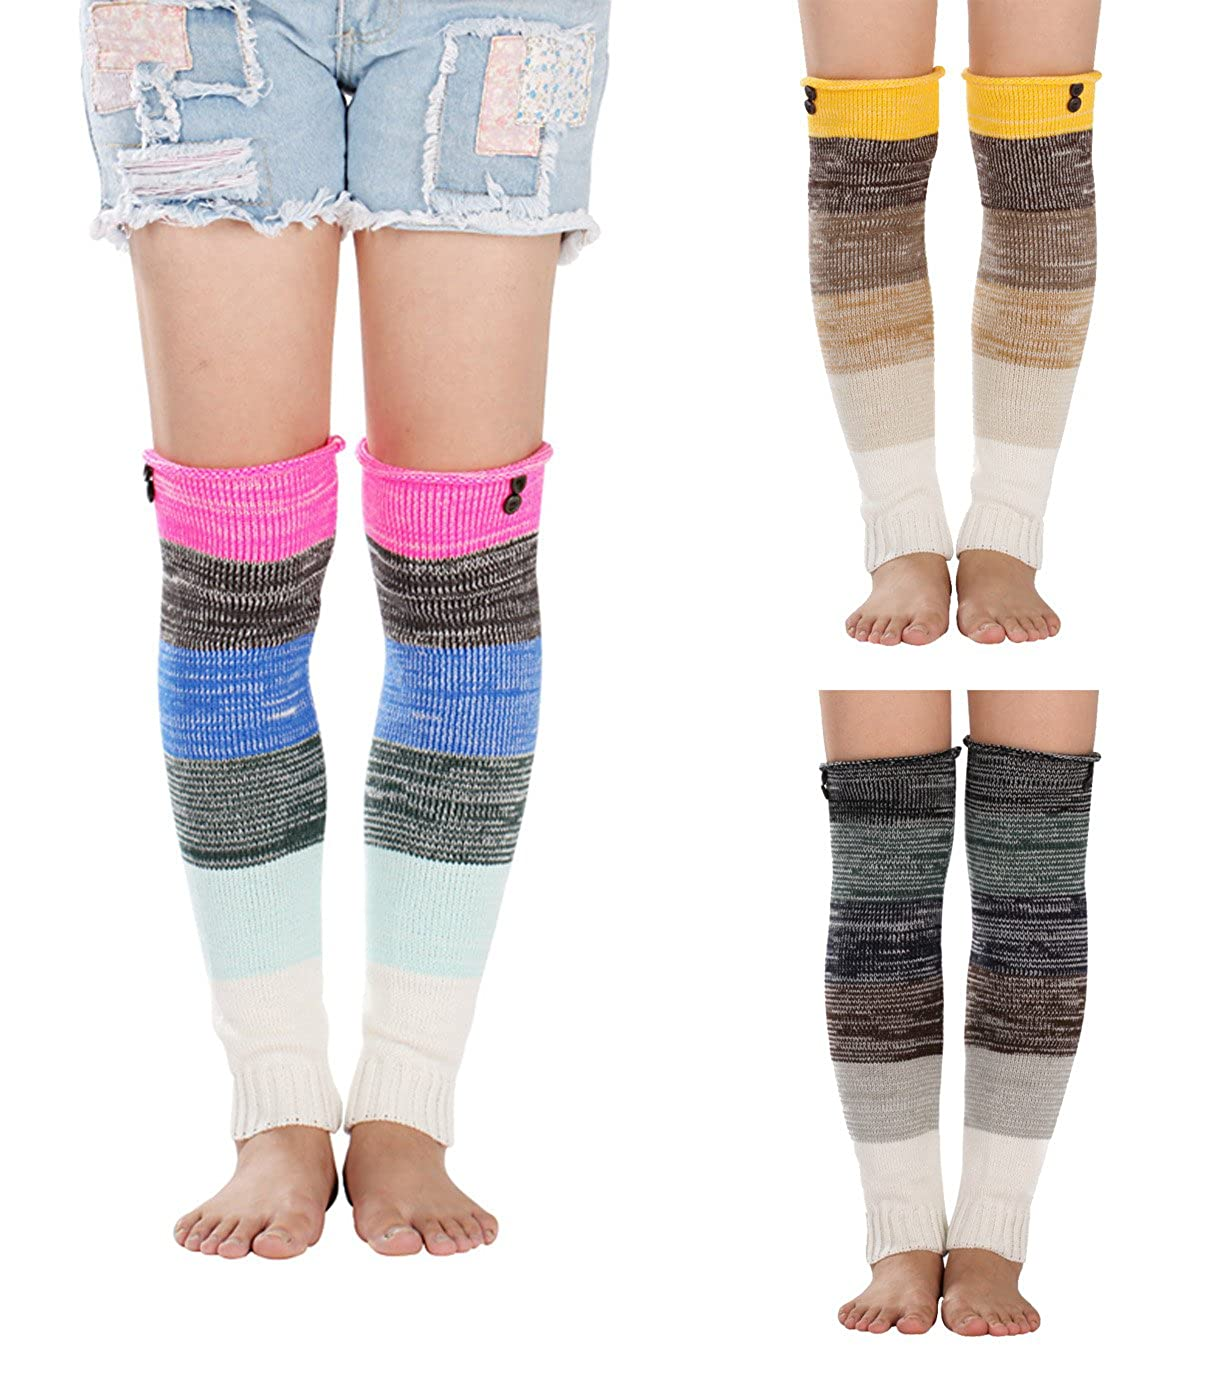 Gellwhu 3 Pack Women's Long Leg Warmers Cable Knit Thick Warm Boot Socks with Buttons GELLA328A